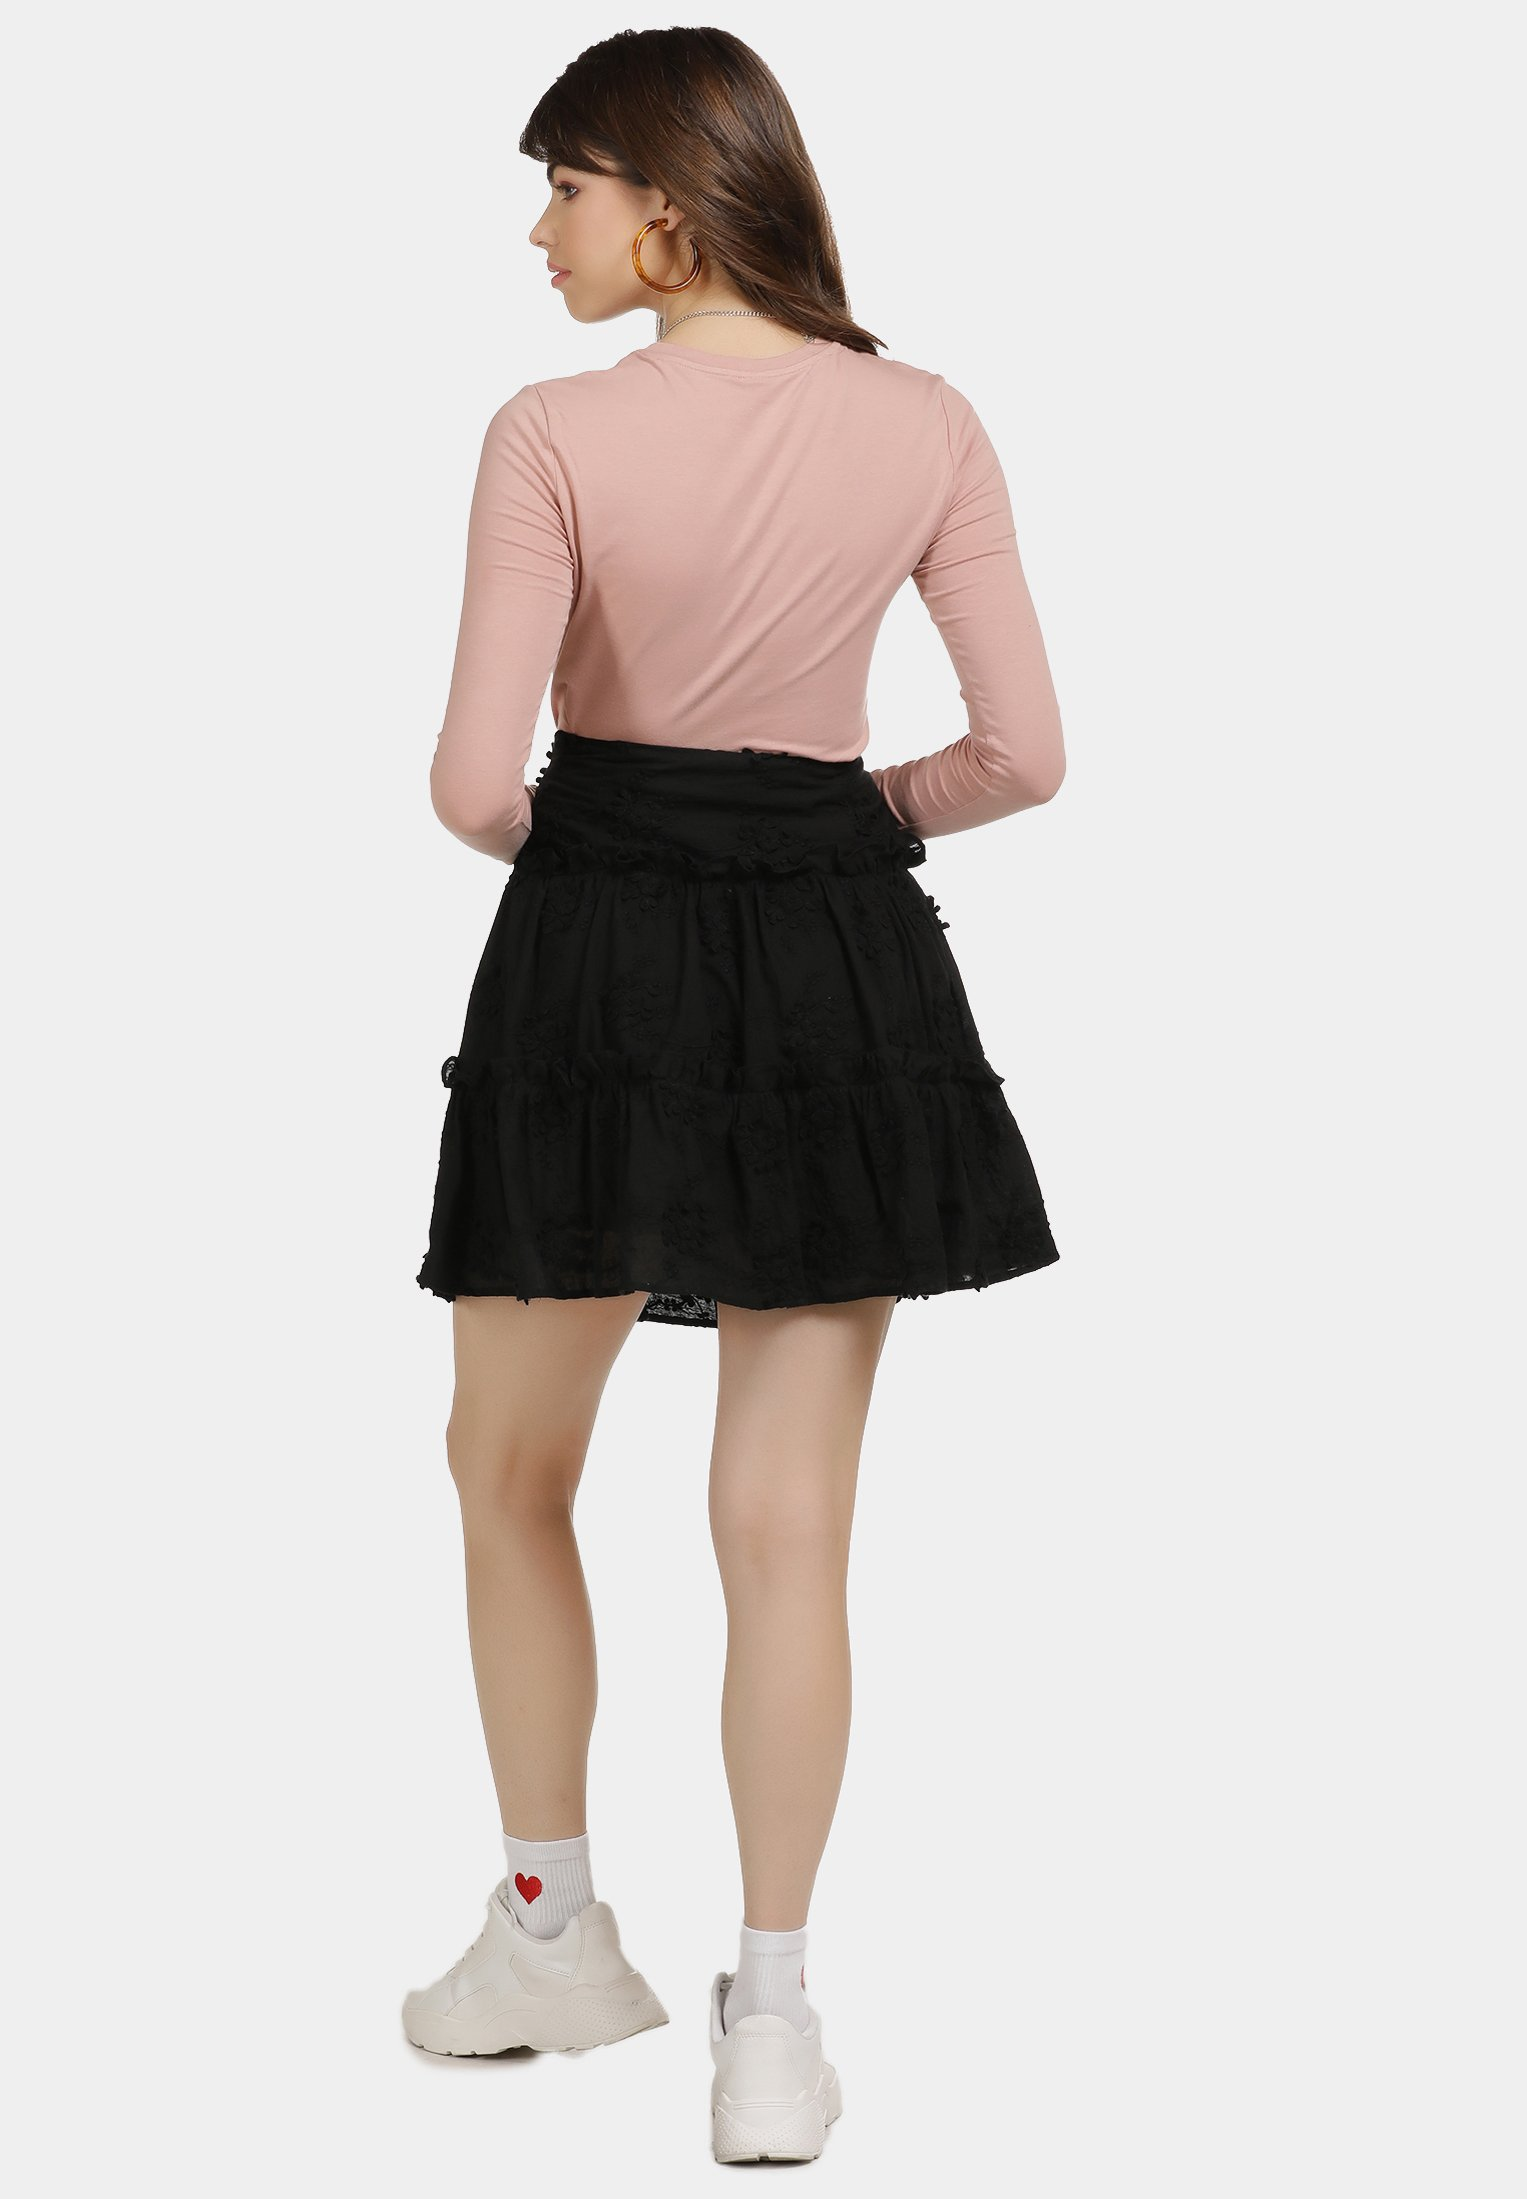 Clean And Classic Women's Clothing myMo A-line skirt schwarz EmB1R1NUd